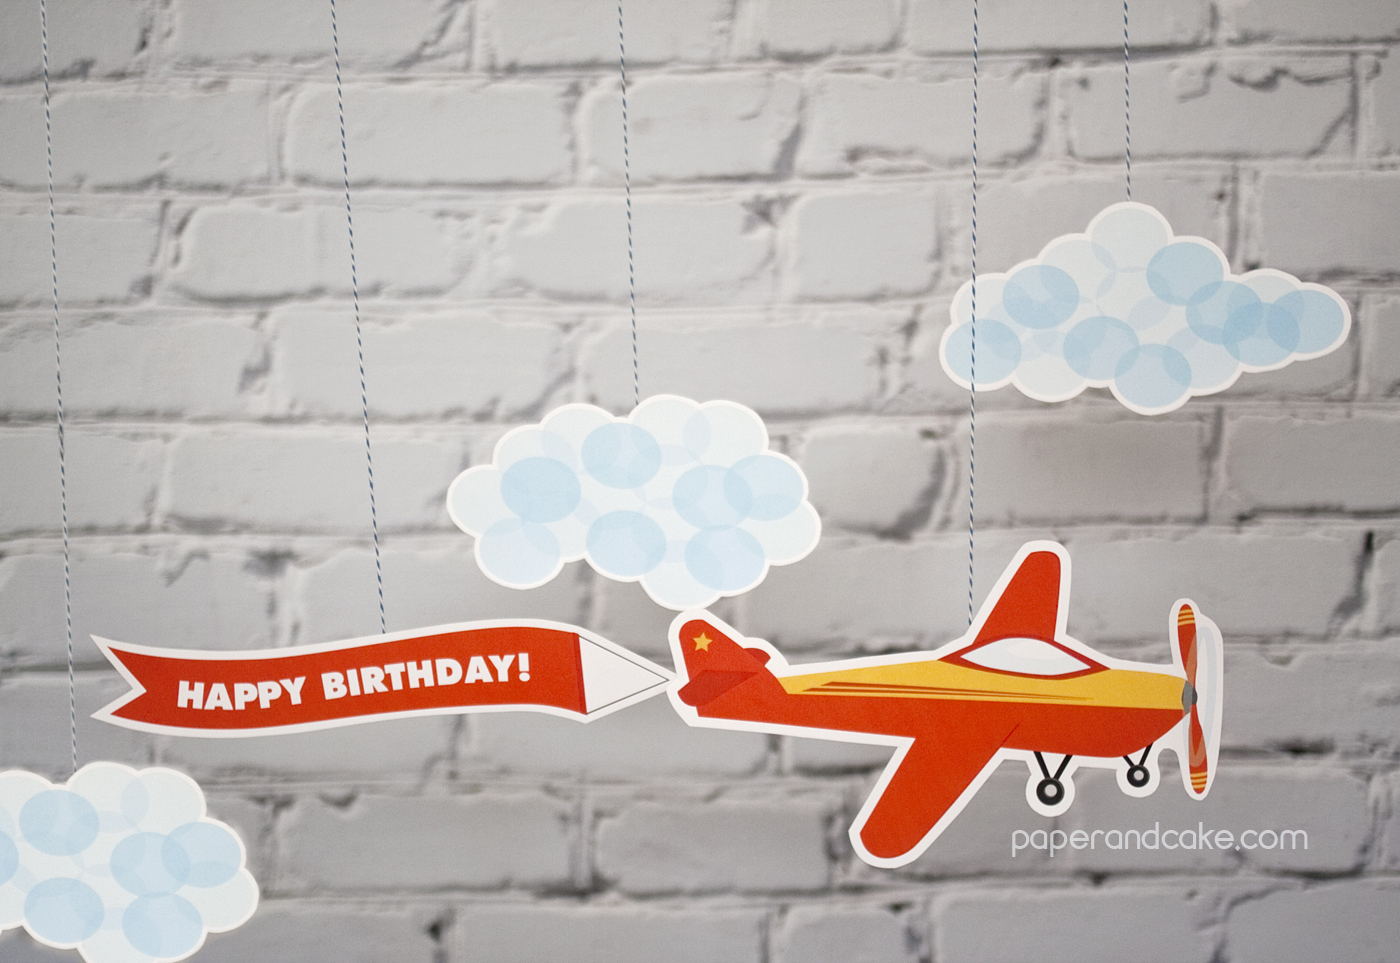 Airplane Birthday Party Backdrop Image Inspiration of Cake and